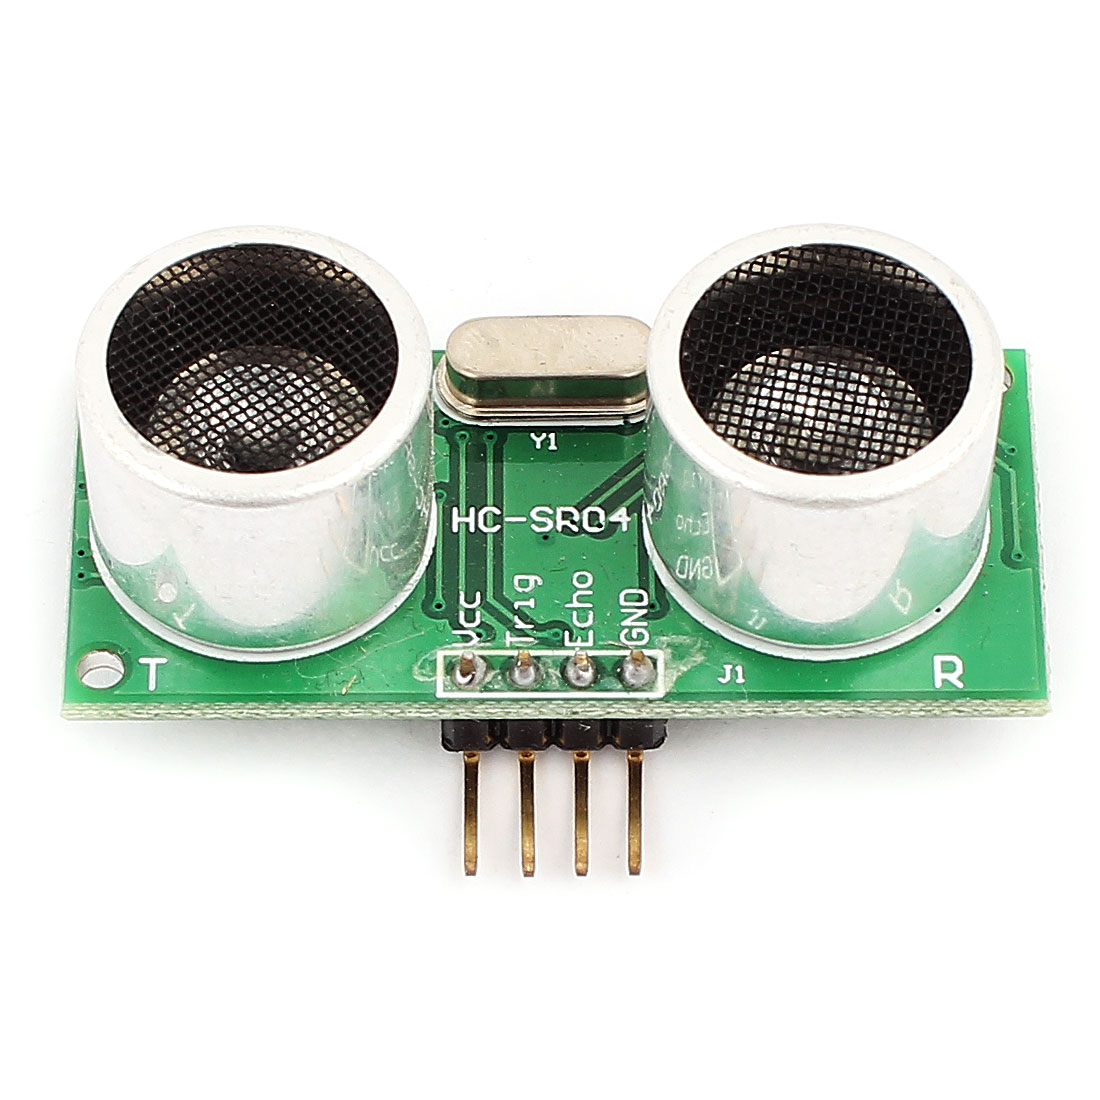 5V Ultrasonic Module HC-SR04 Distance Measuring Sensor for Arduino